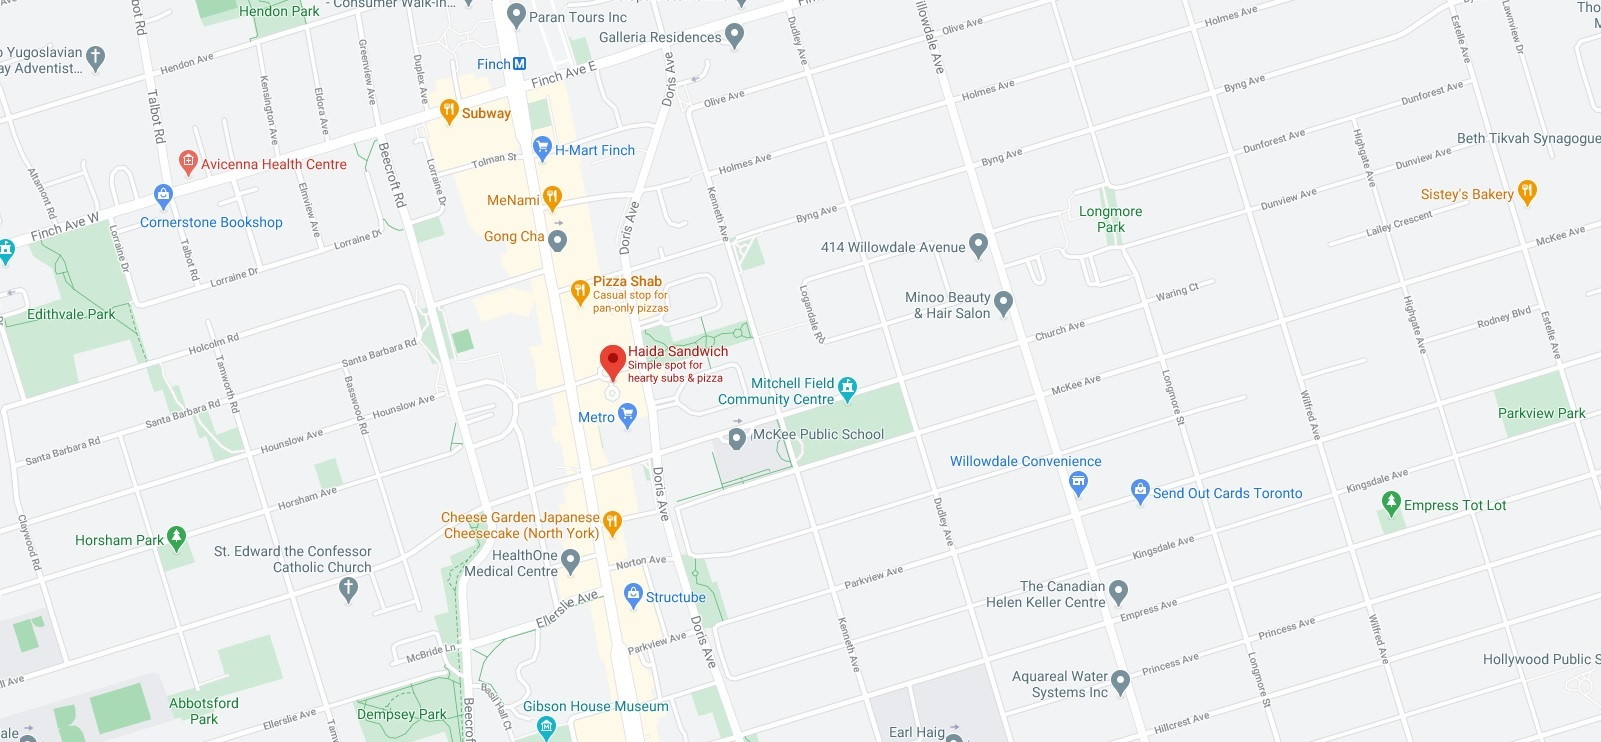 Haida Sandwich (offering delivery service near University of Toronto)